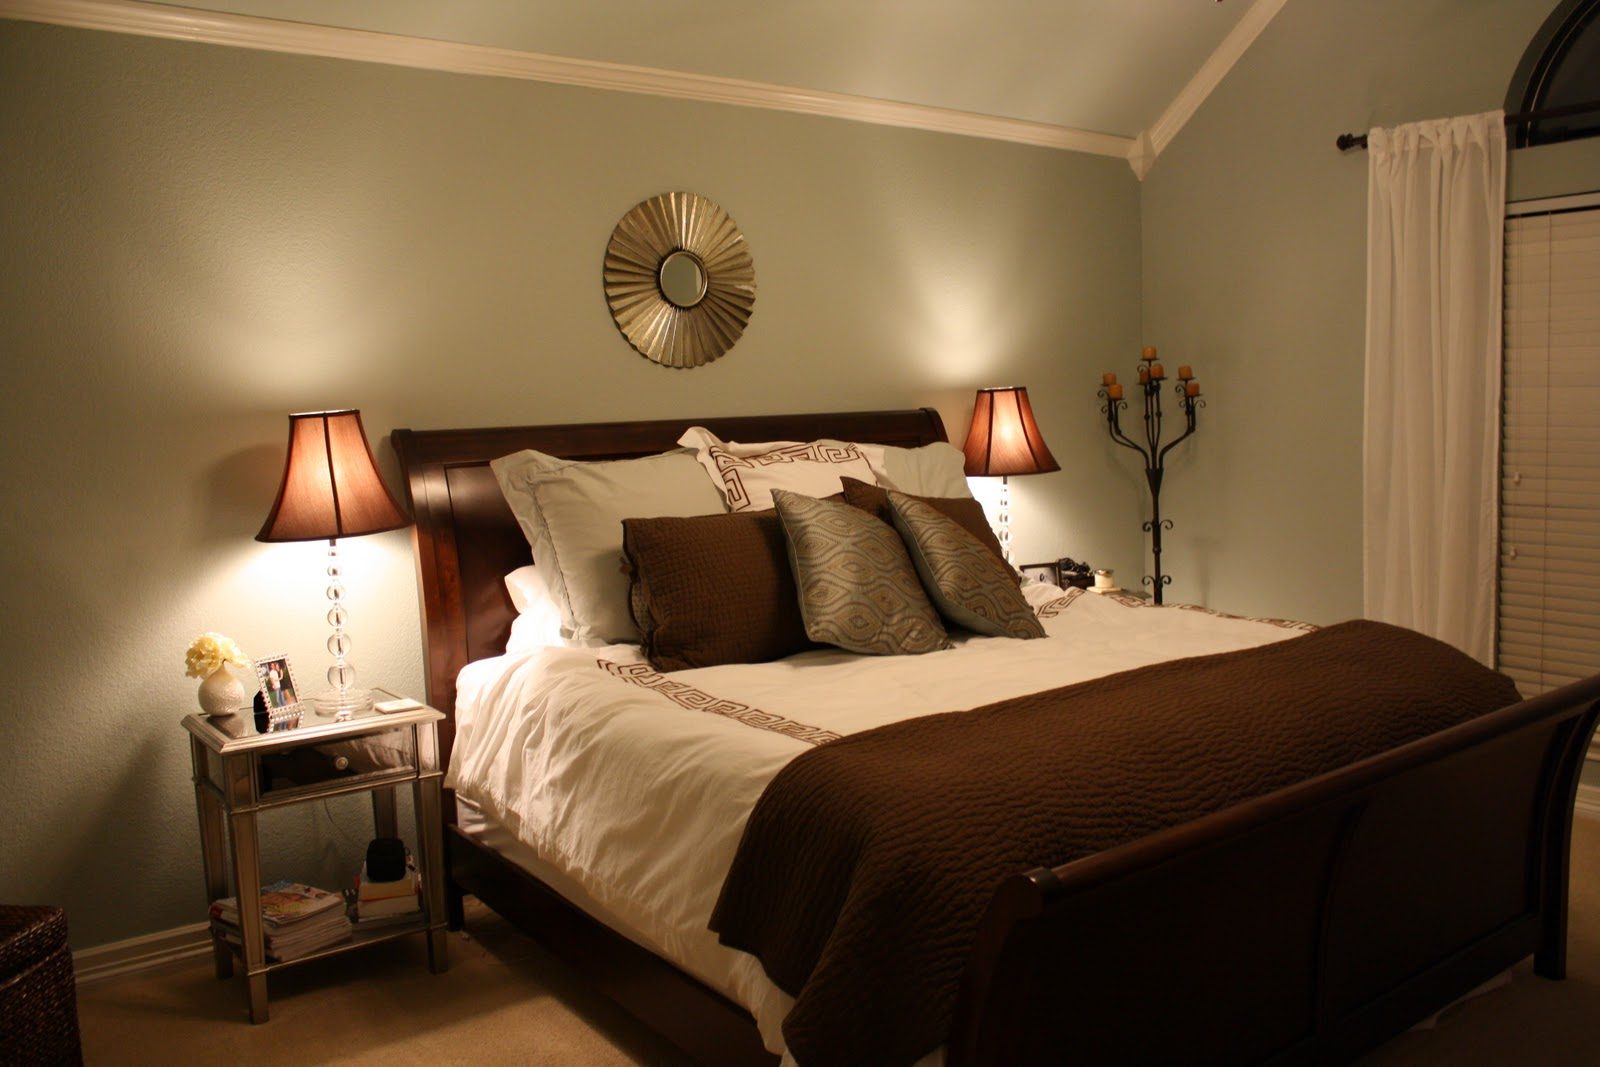 Bedroom Painting Ideas For Men - The Interior Designs